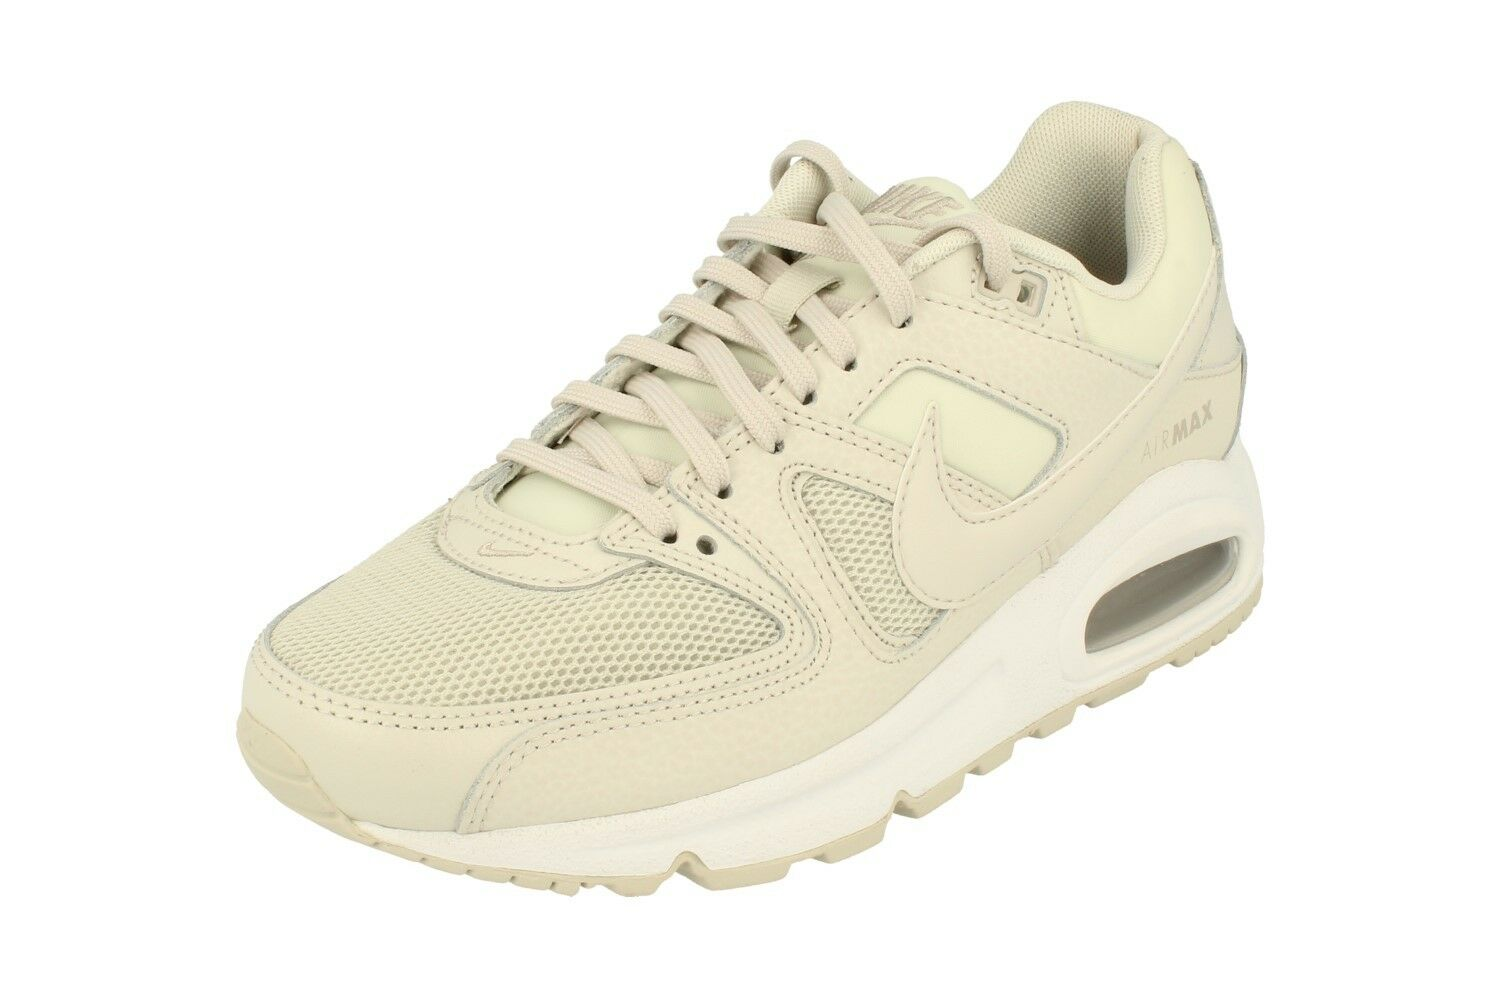 Command 397690 Course Nike Baskets Femmes Air Max Basket qfvI1p